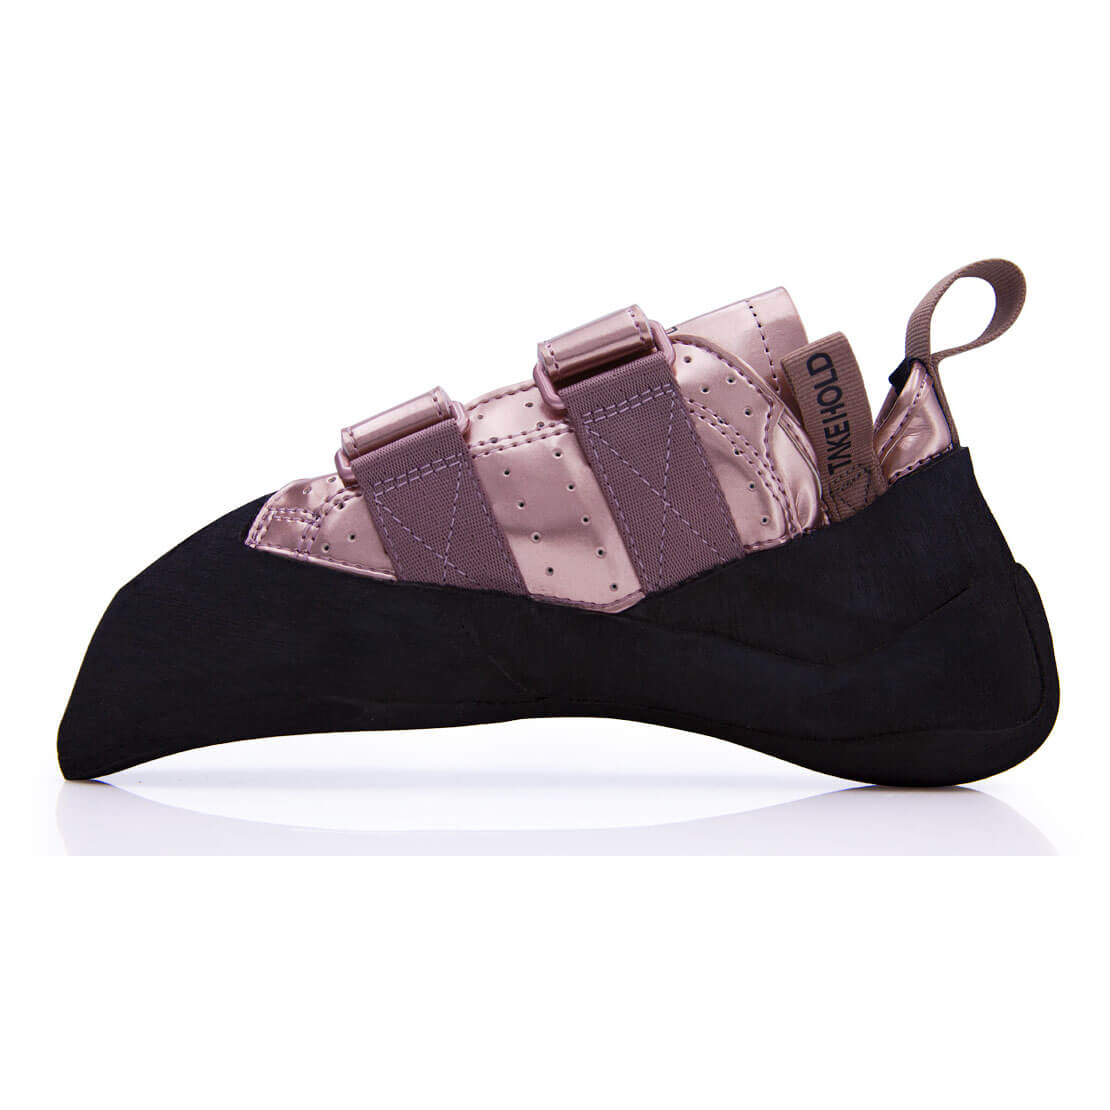 So iLL - The Street - Chaussons d'escalade taille 8, noir